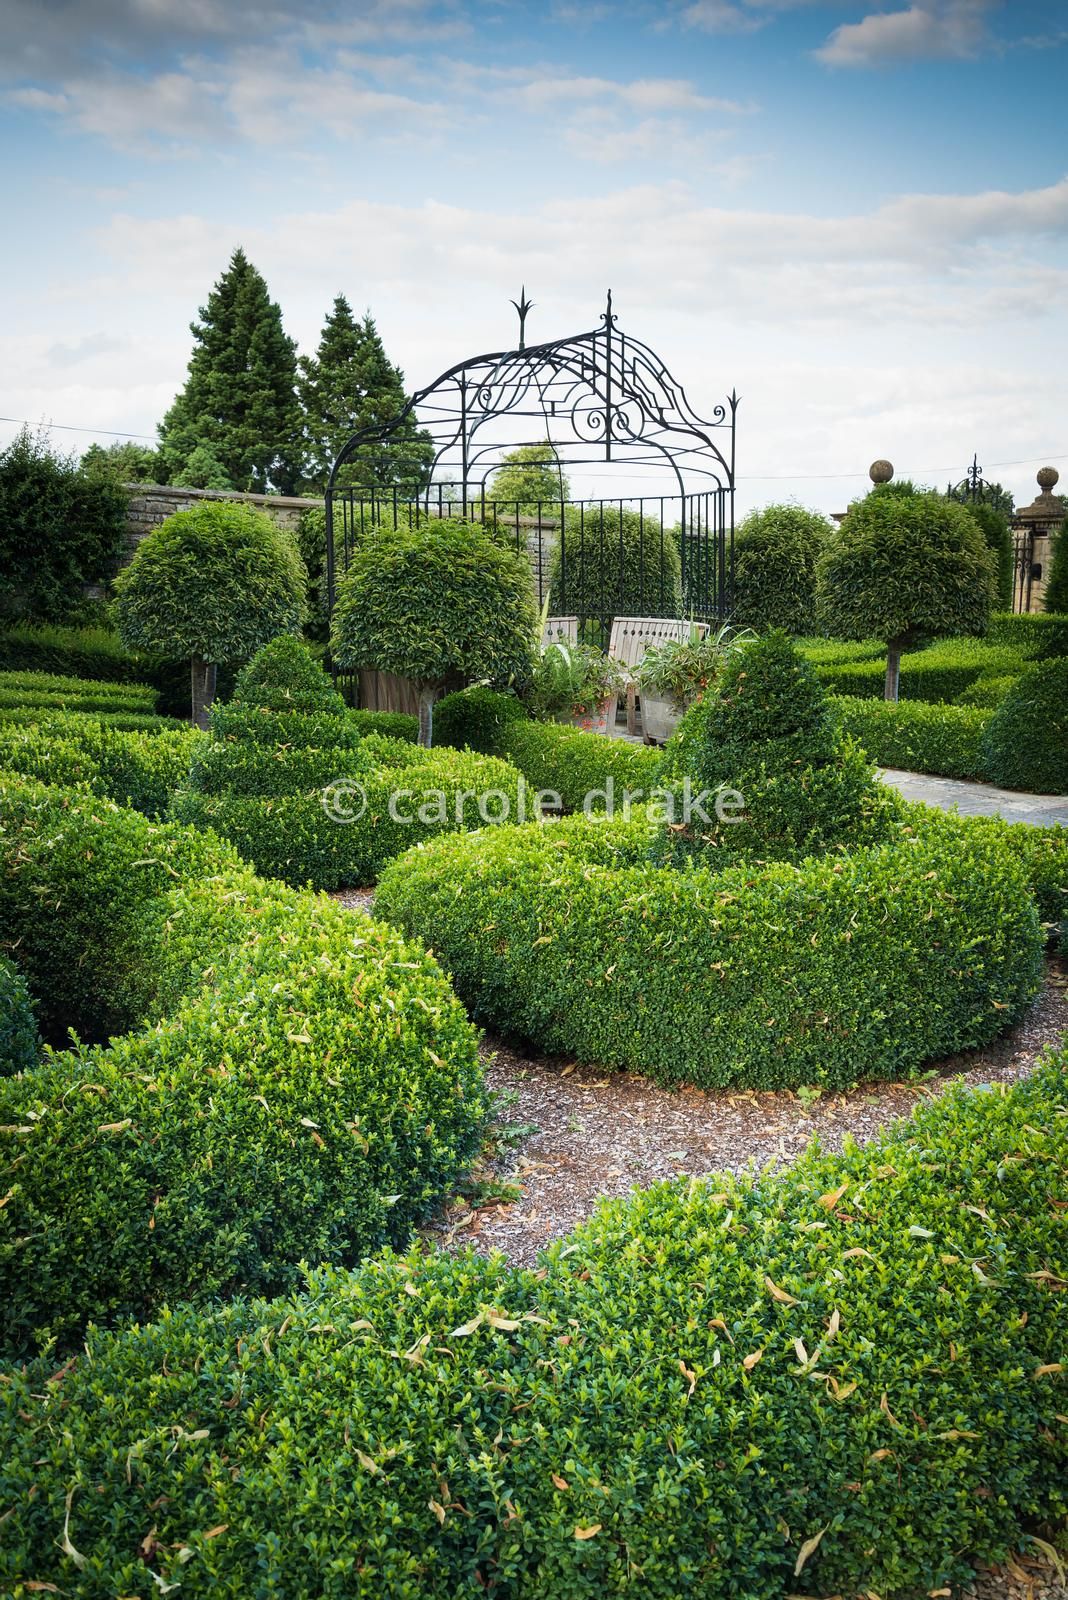 Parterre at Bourton House, Moreton-in-Marsh in August with clipped box and standard Portugese laurels.